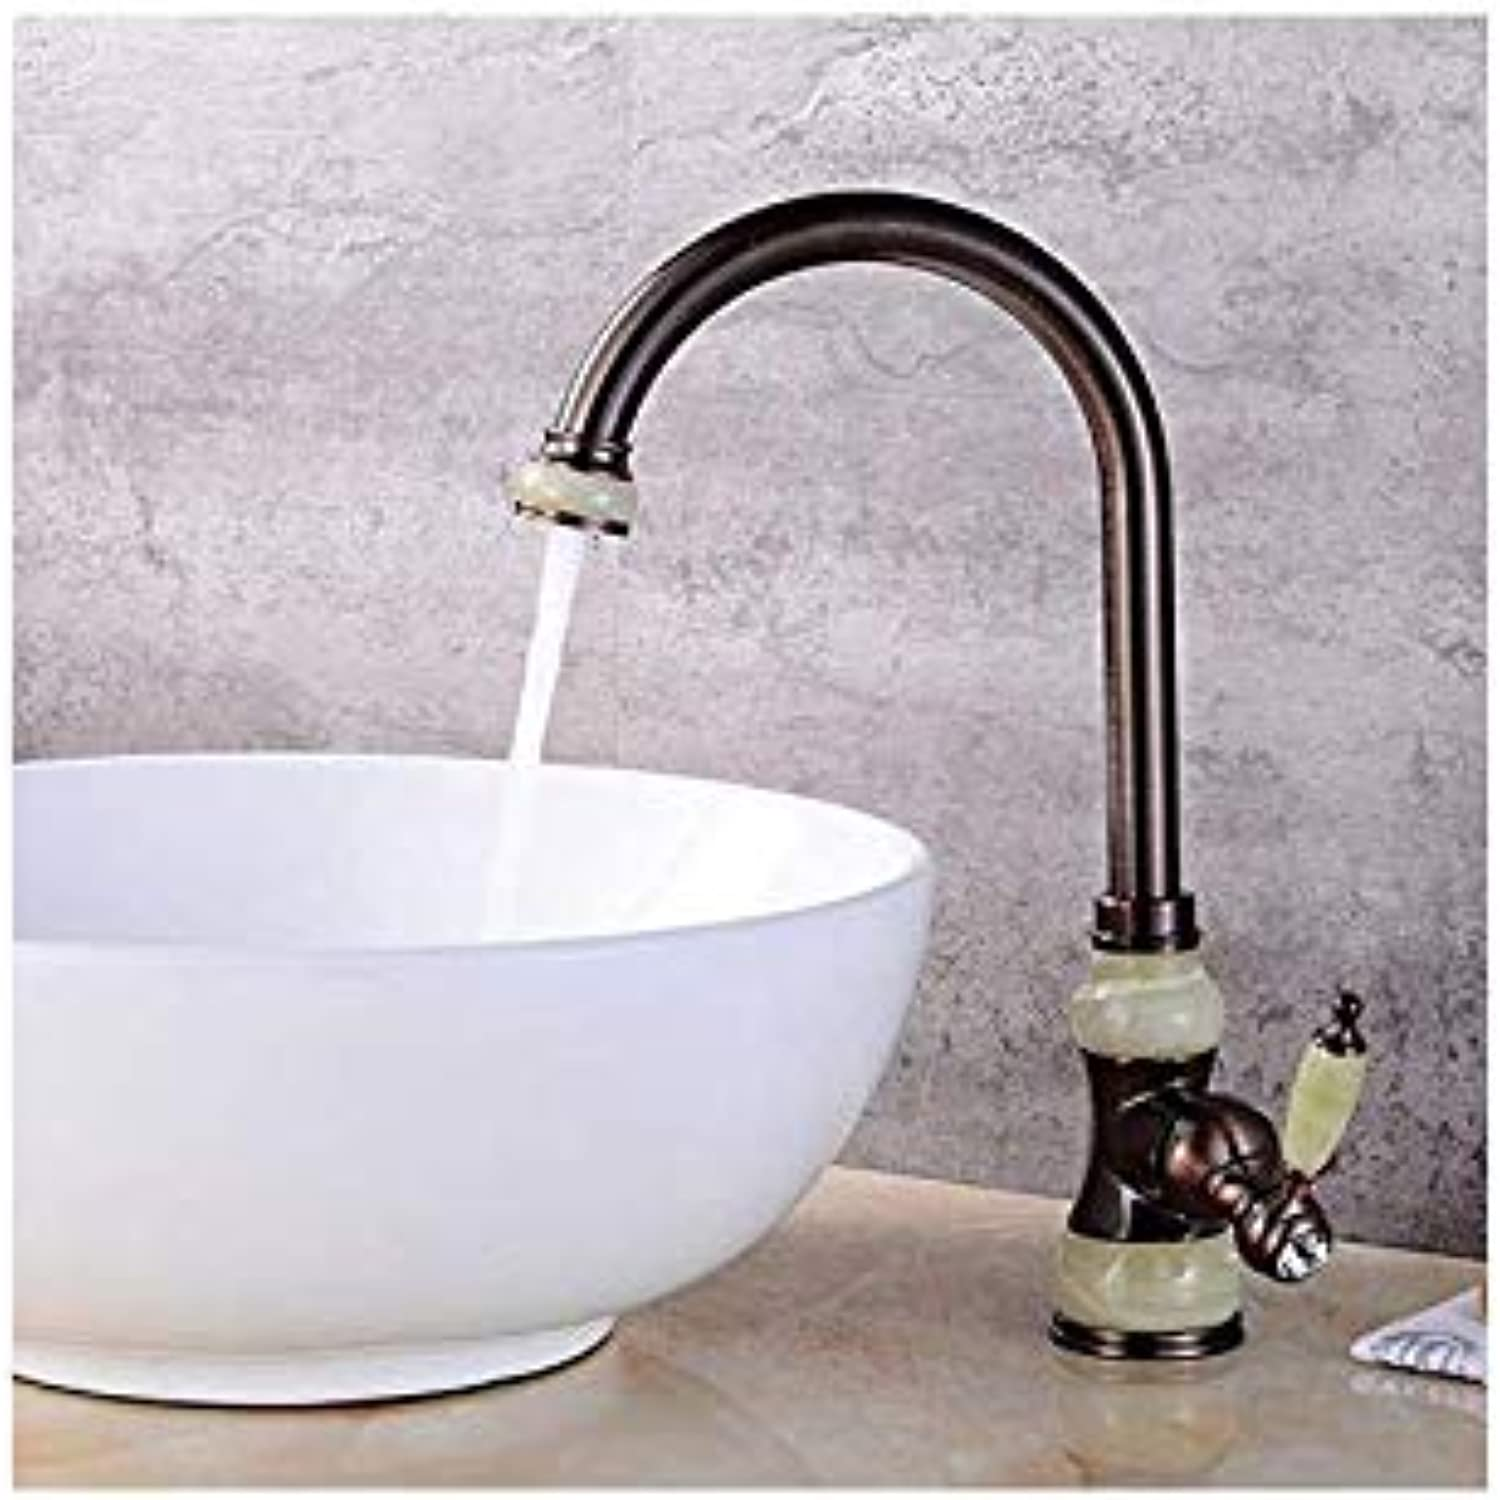 Water Tap Faucet Taps Jade Copper Table Top Basin Hot and Cold Faucet Kitchen Sink Can Be redated gold Antique Faucet, Orb Sapphire